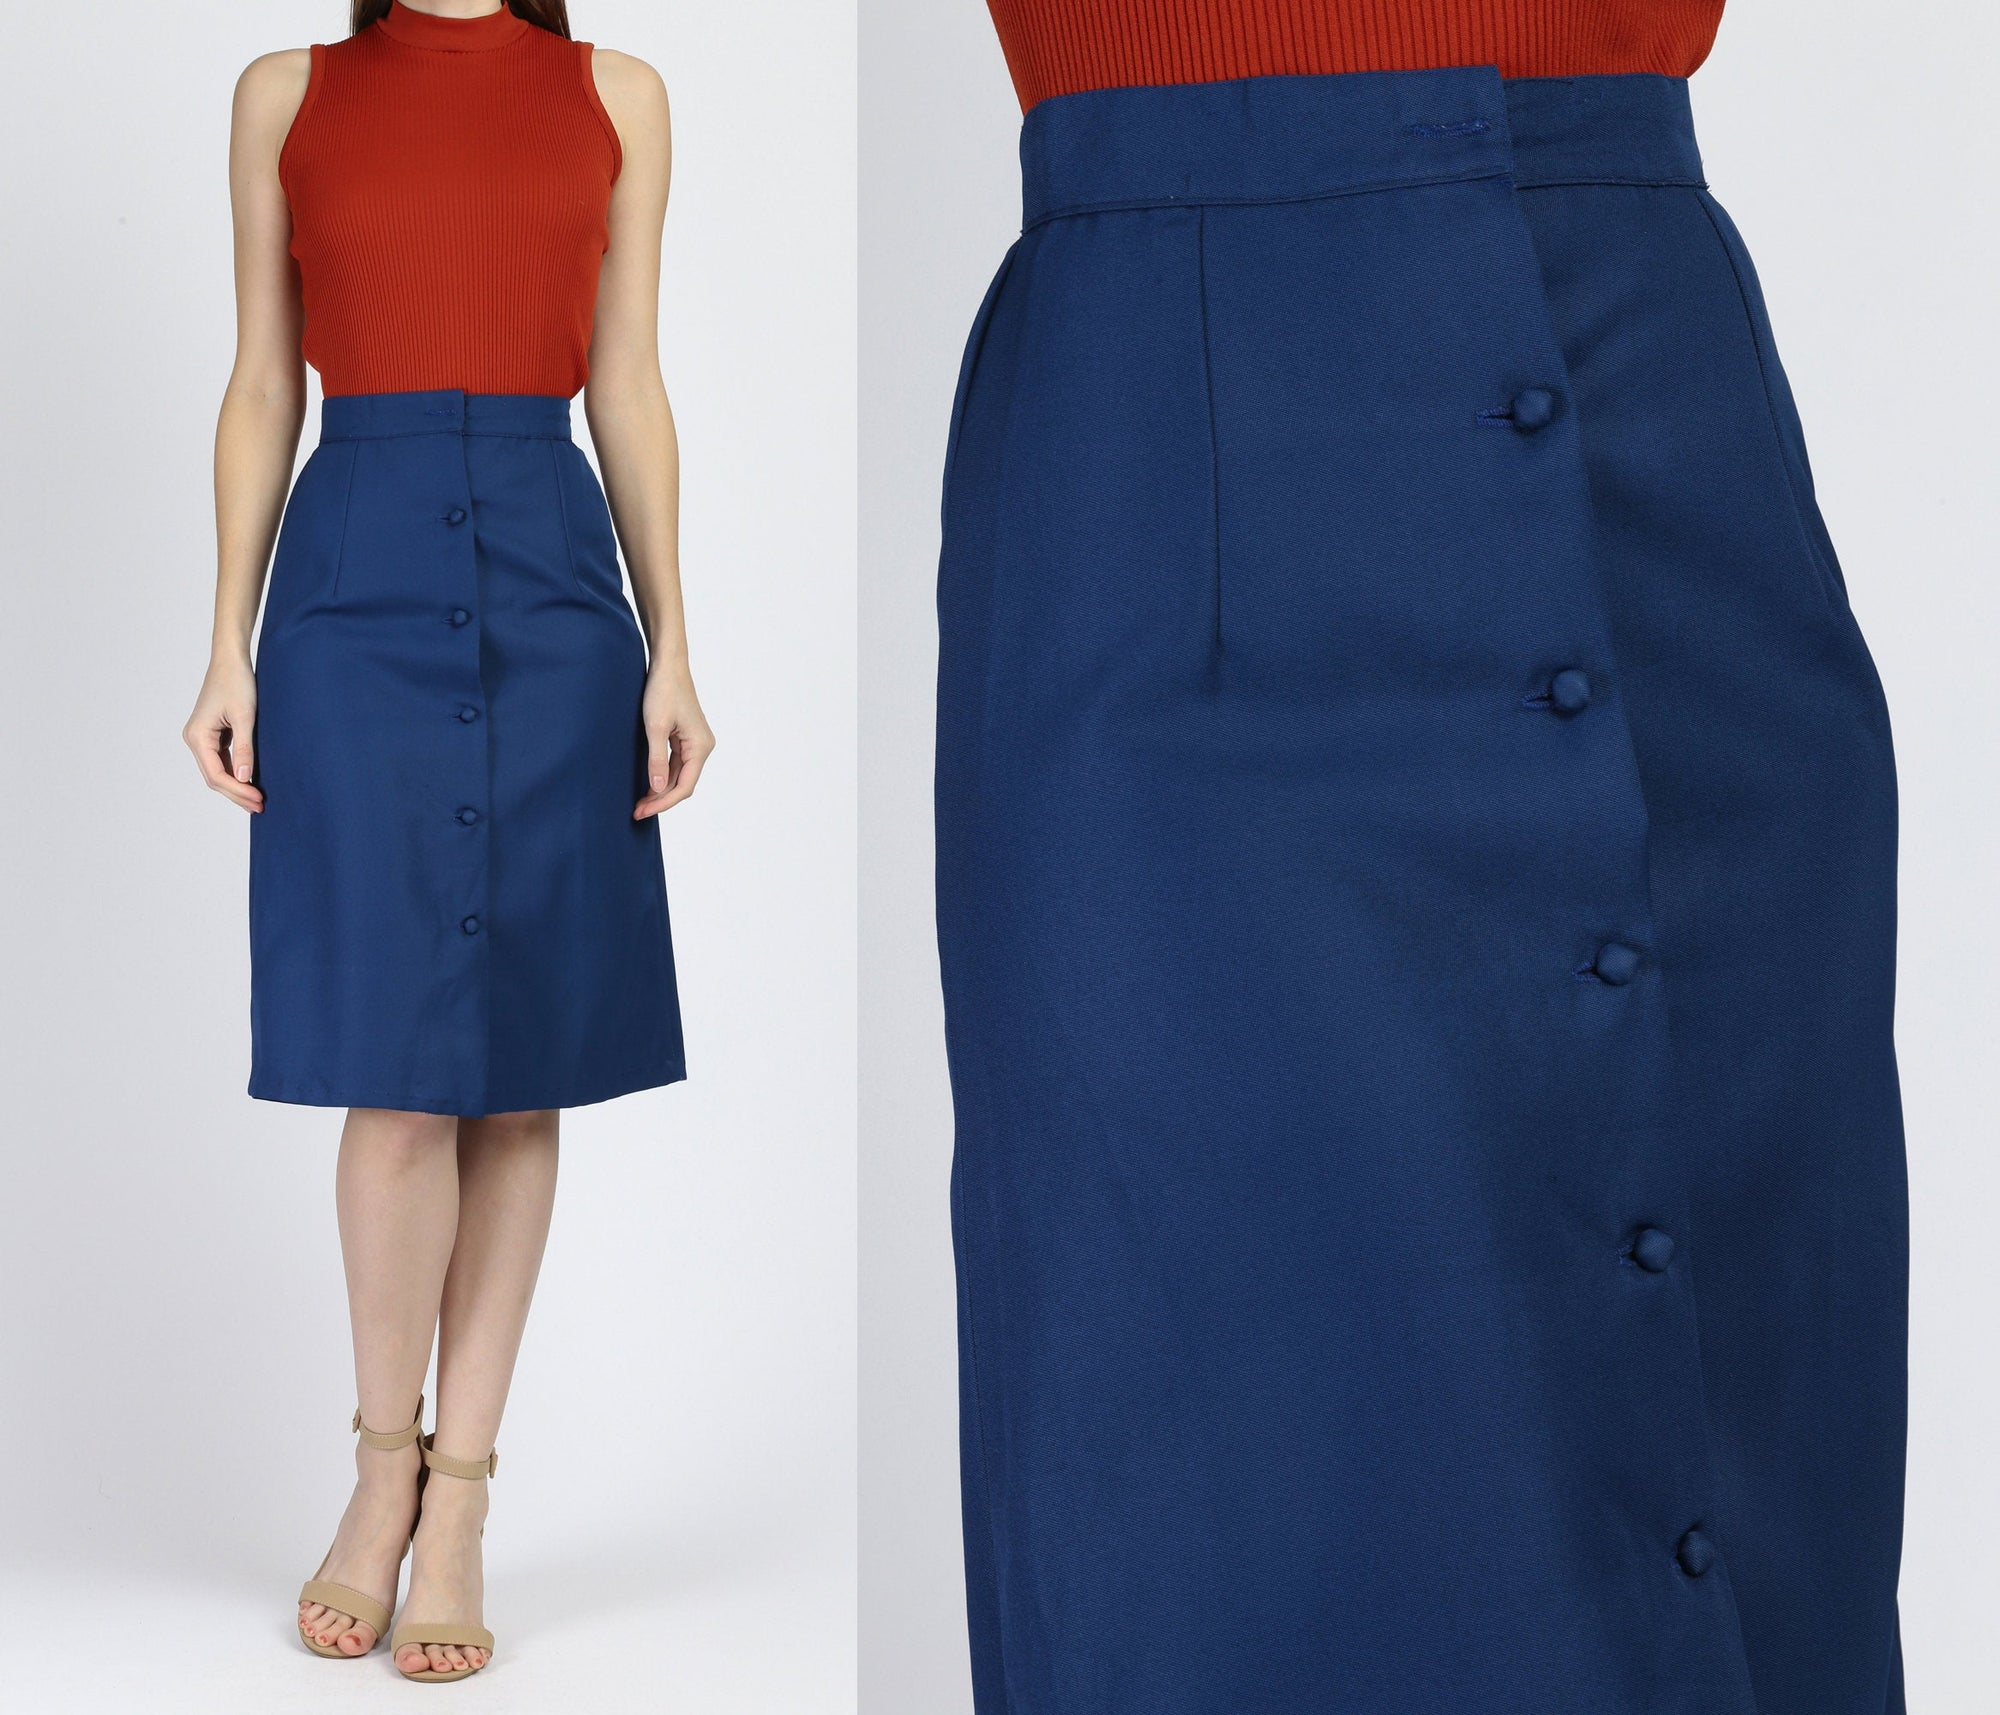 70s Navy Blue Button Through Skirt - Extra Small